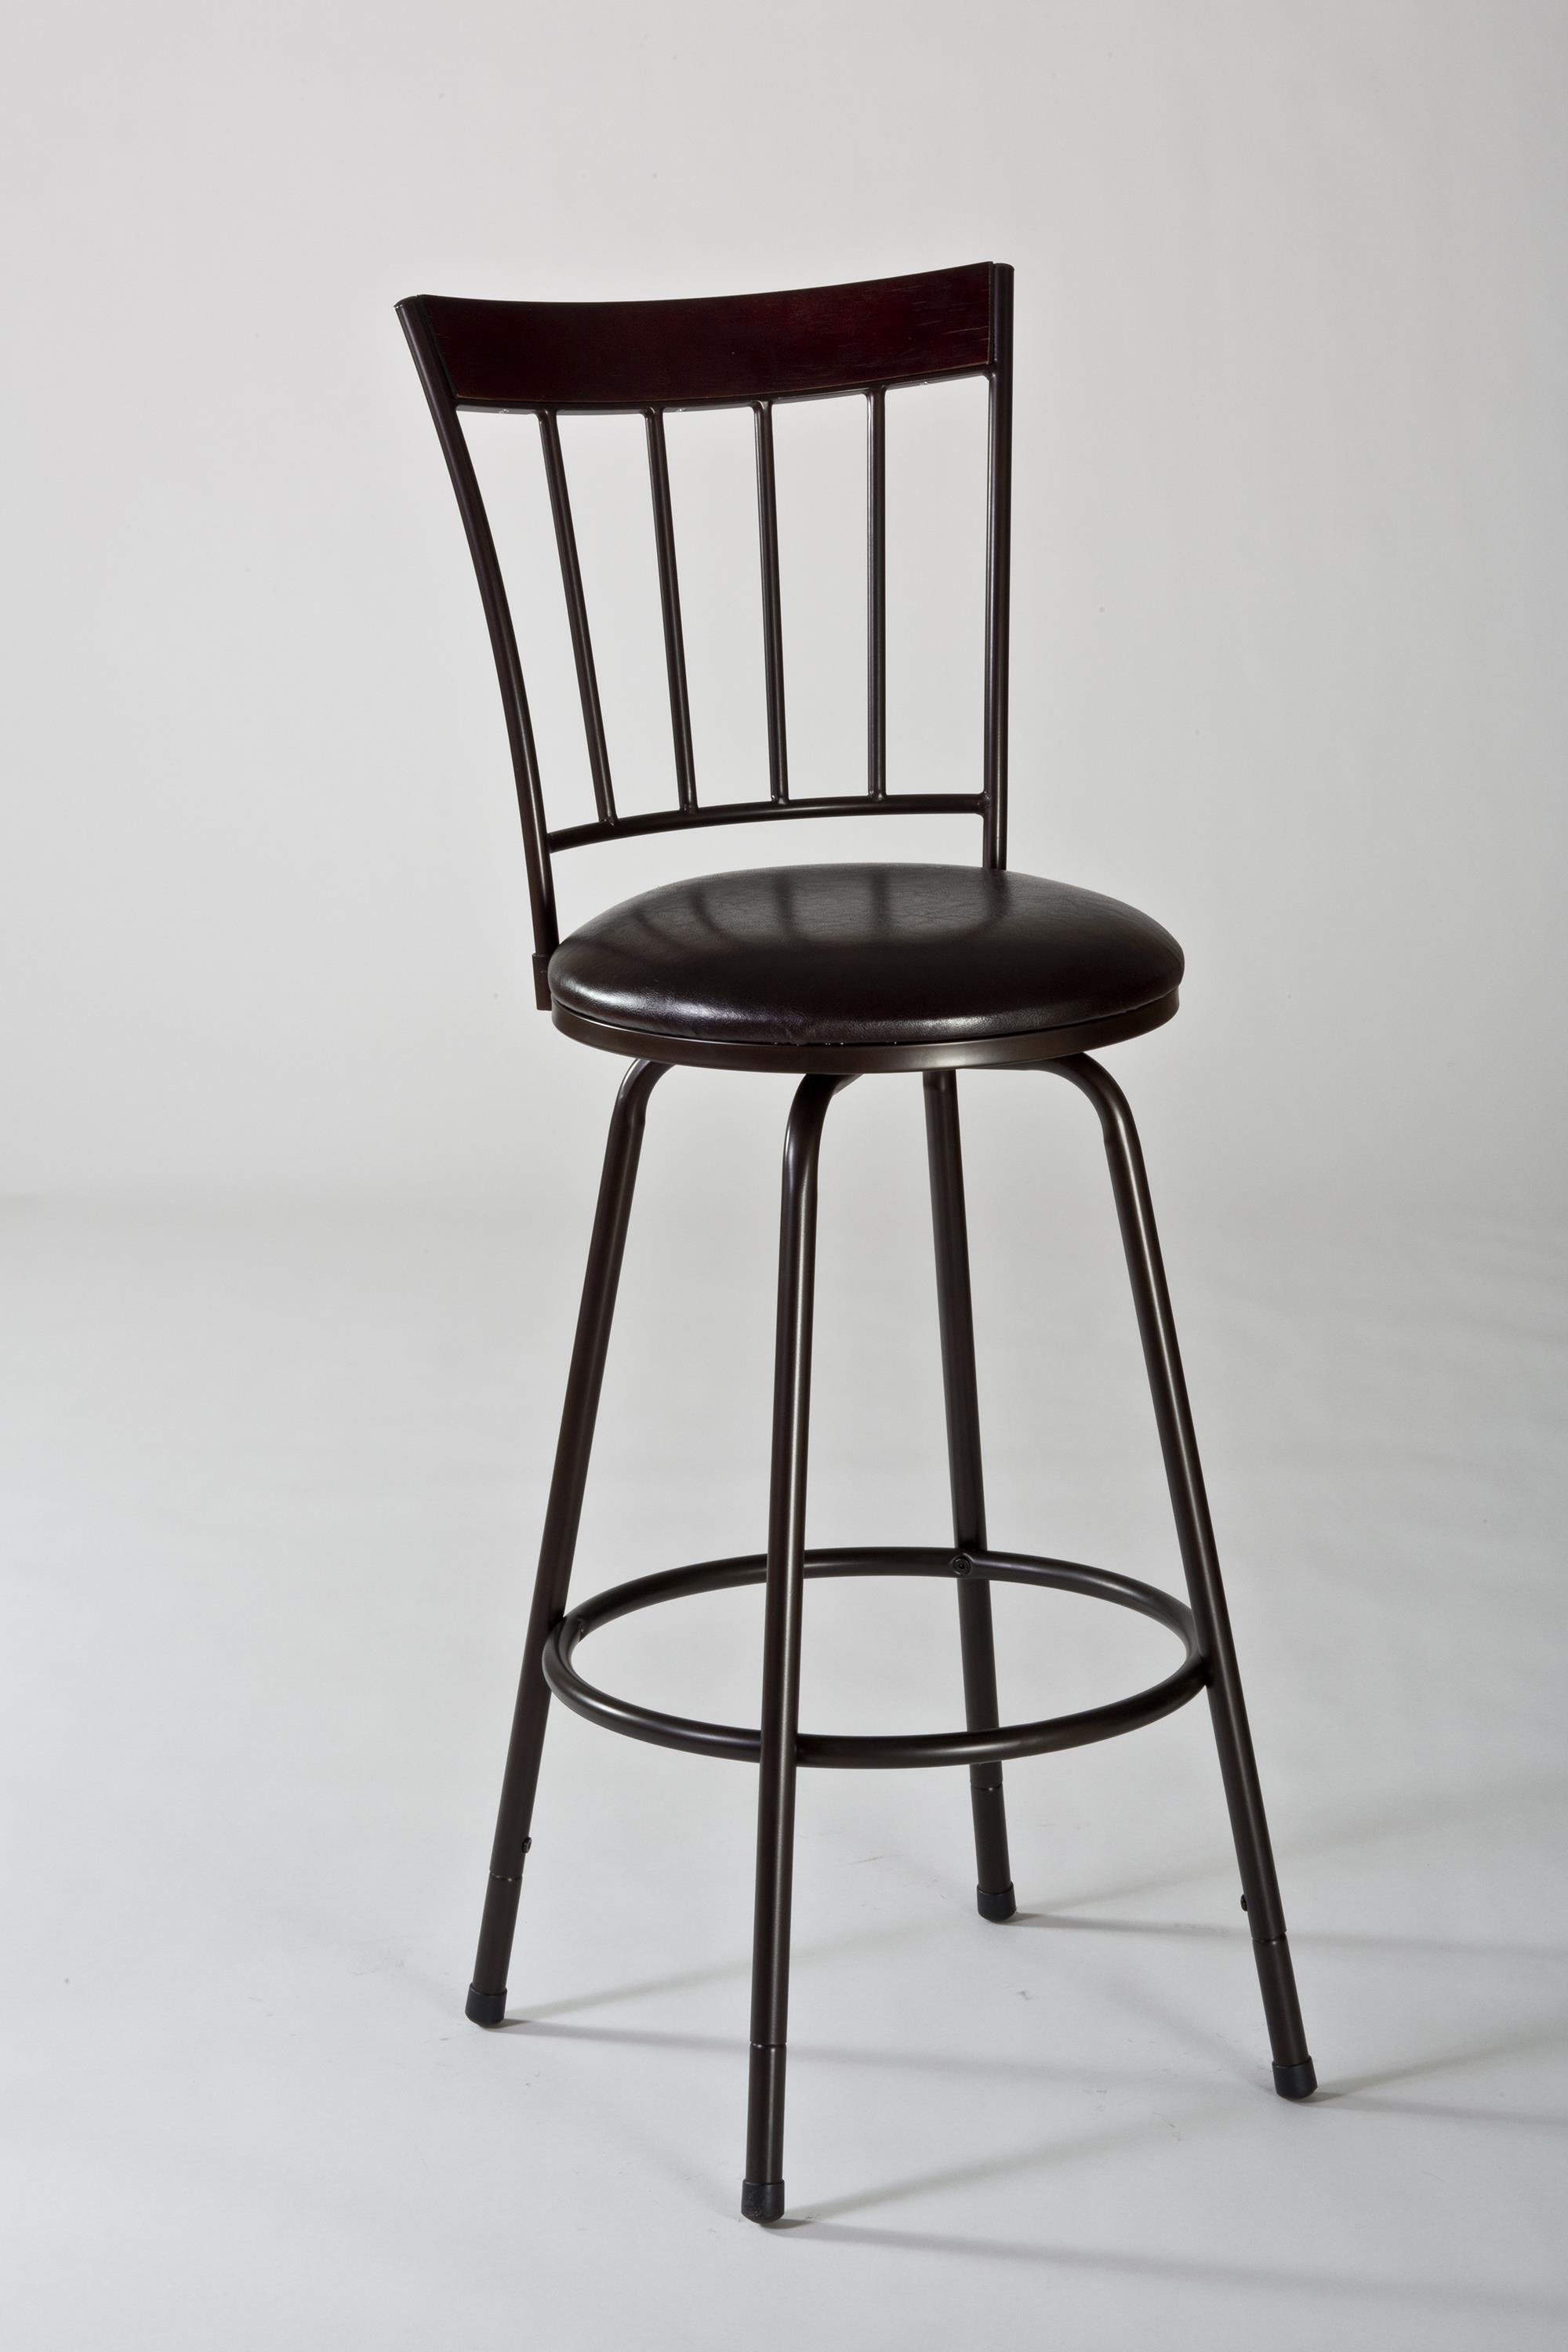 Hillsdale Metal Stools Cantwell Swivel Counter/ Bar Stool - Item Number: 5258-830S